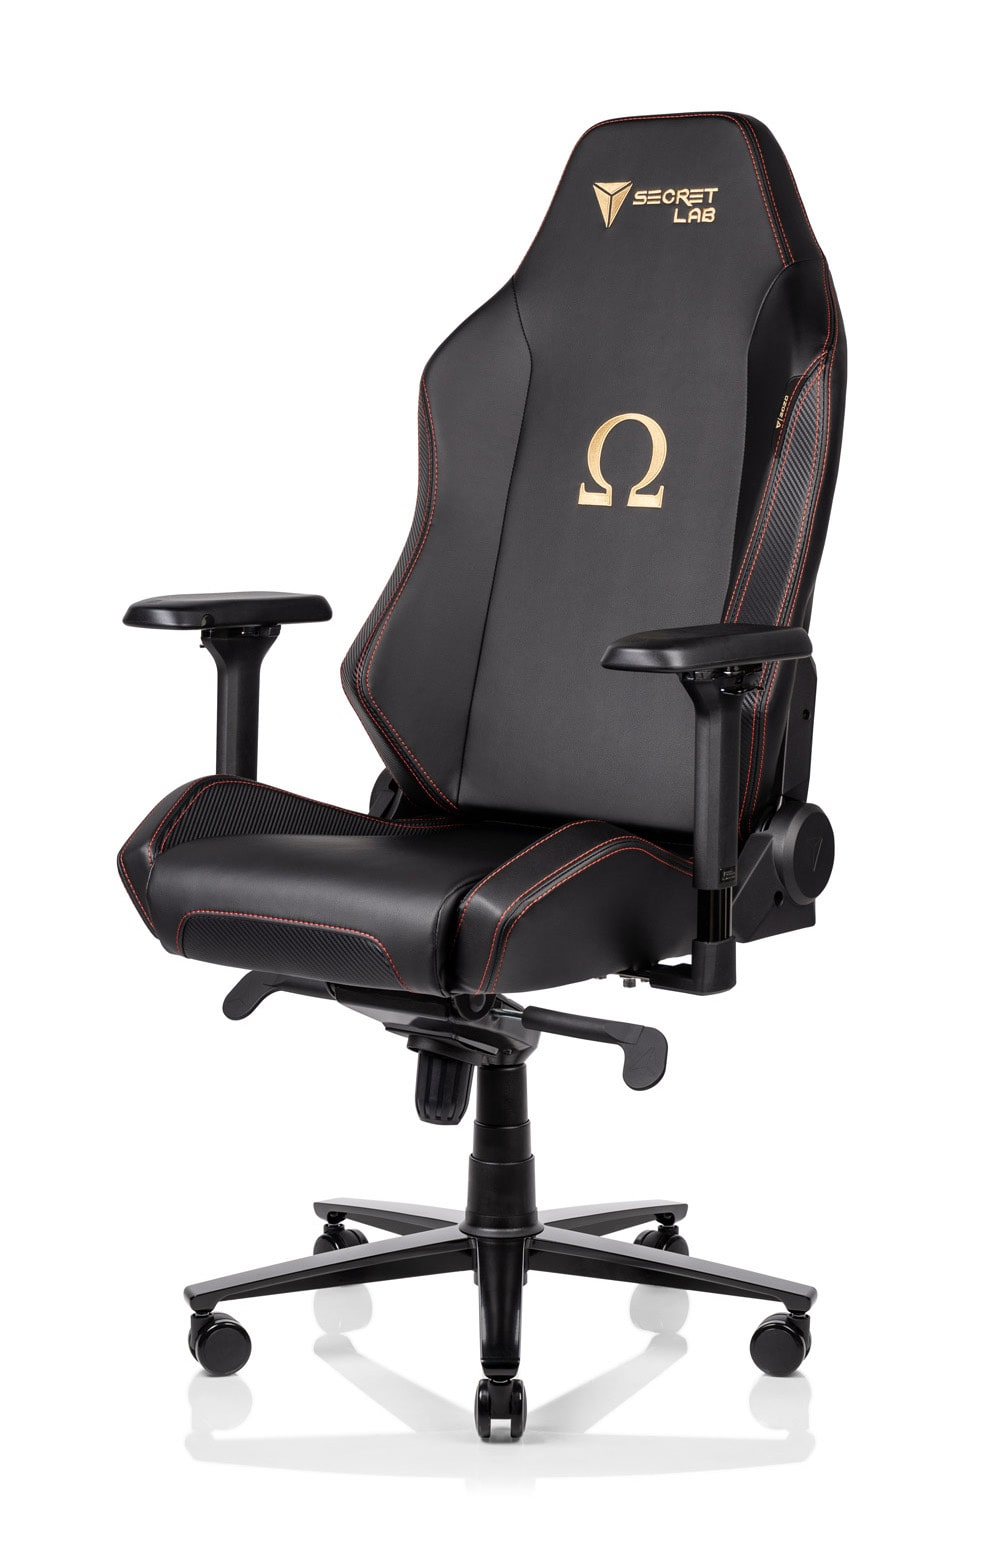 Best High Chair 2020 OMEGA Series gaming seats | Secretlab US